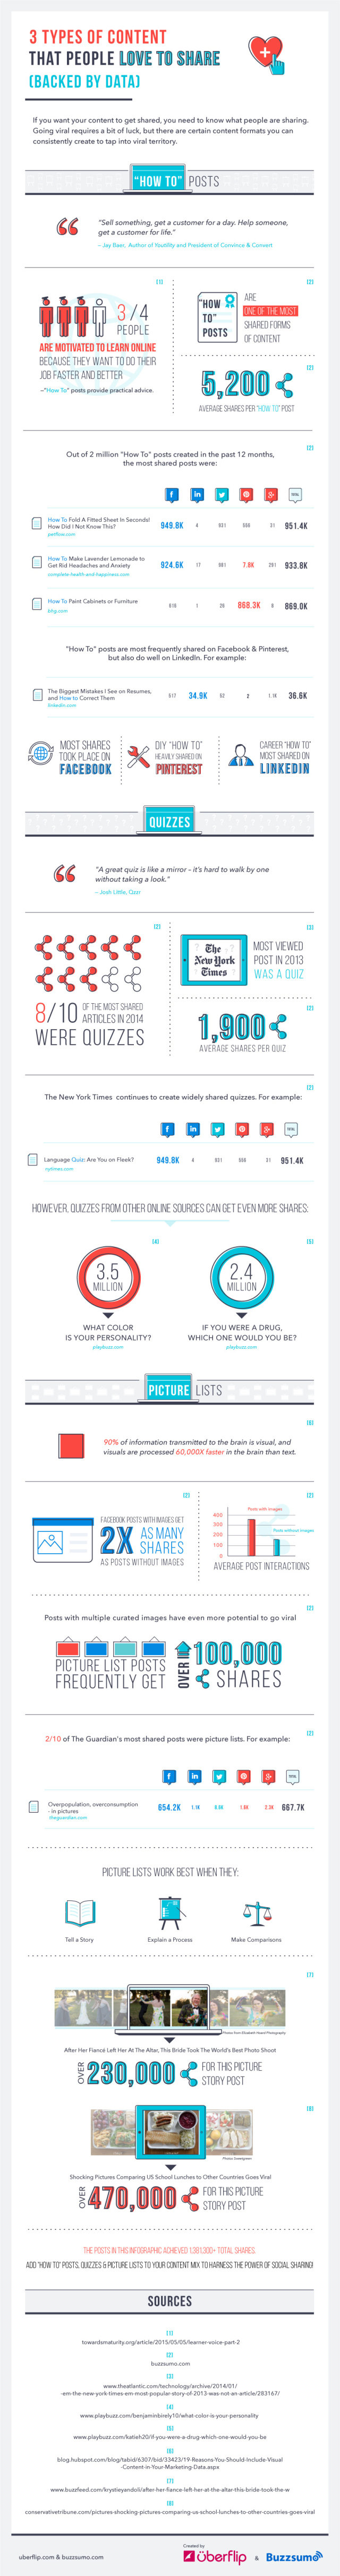 What Your Followers Want: 3 Types of Content People Love to Share #Infographic